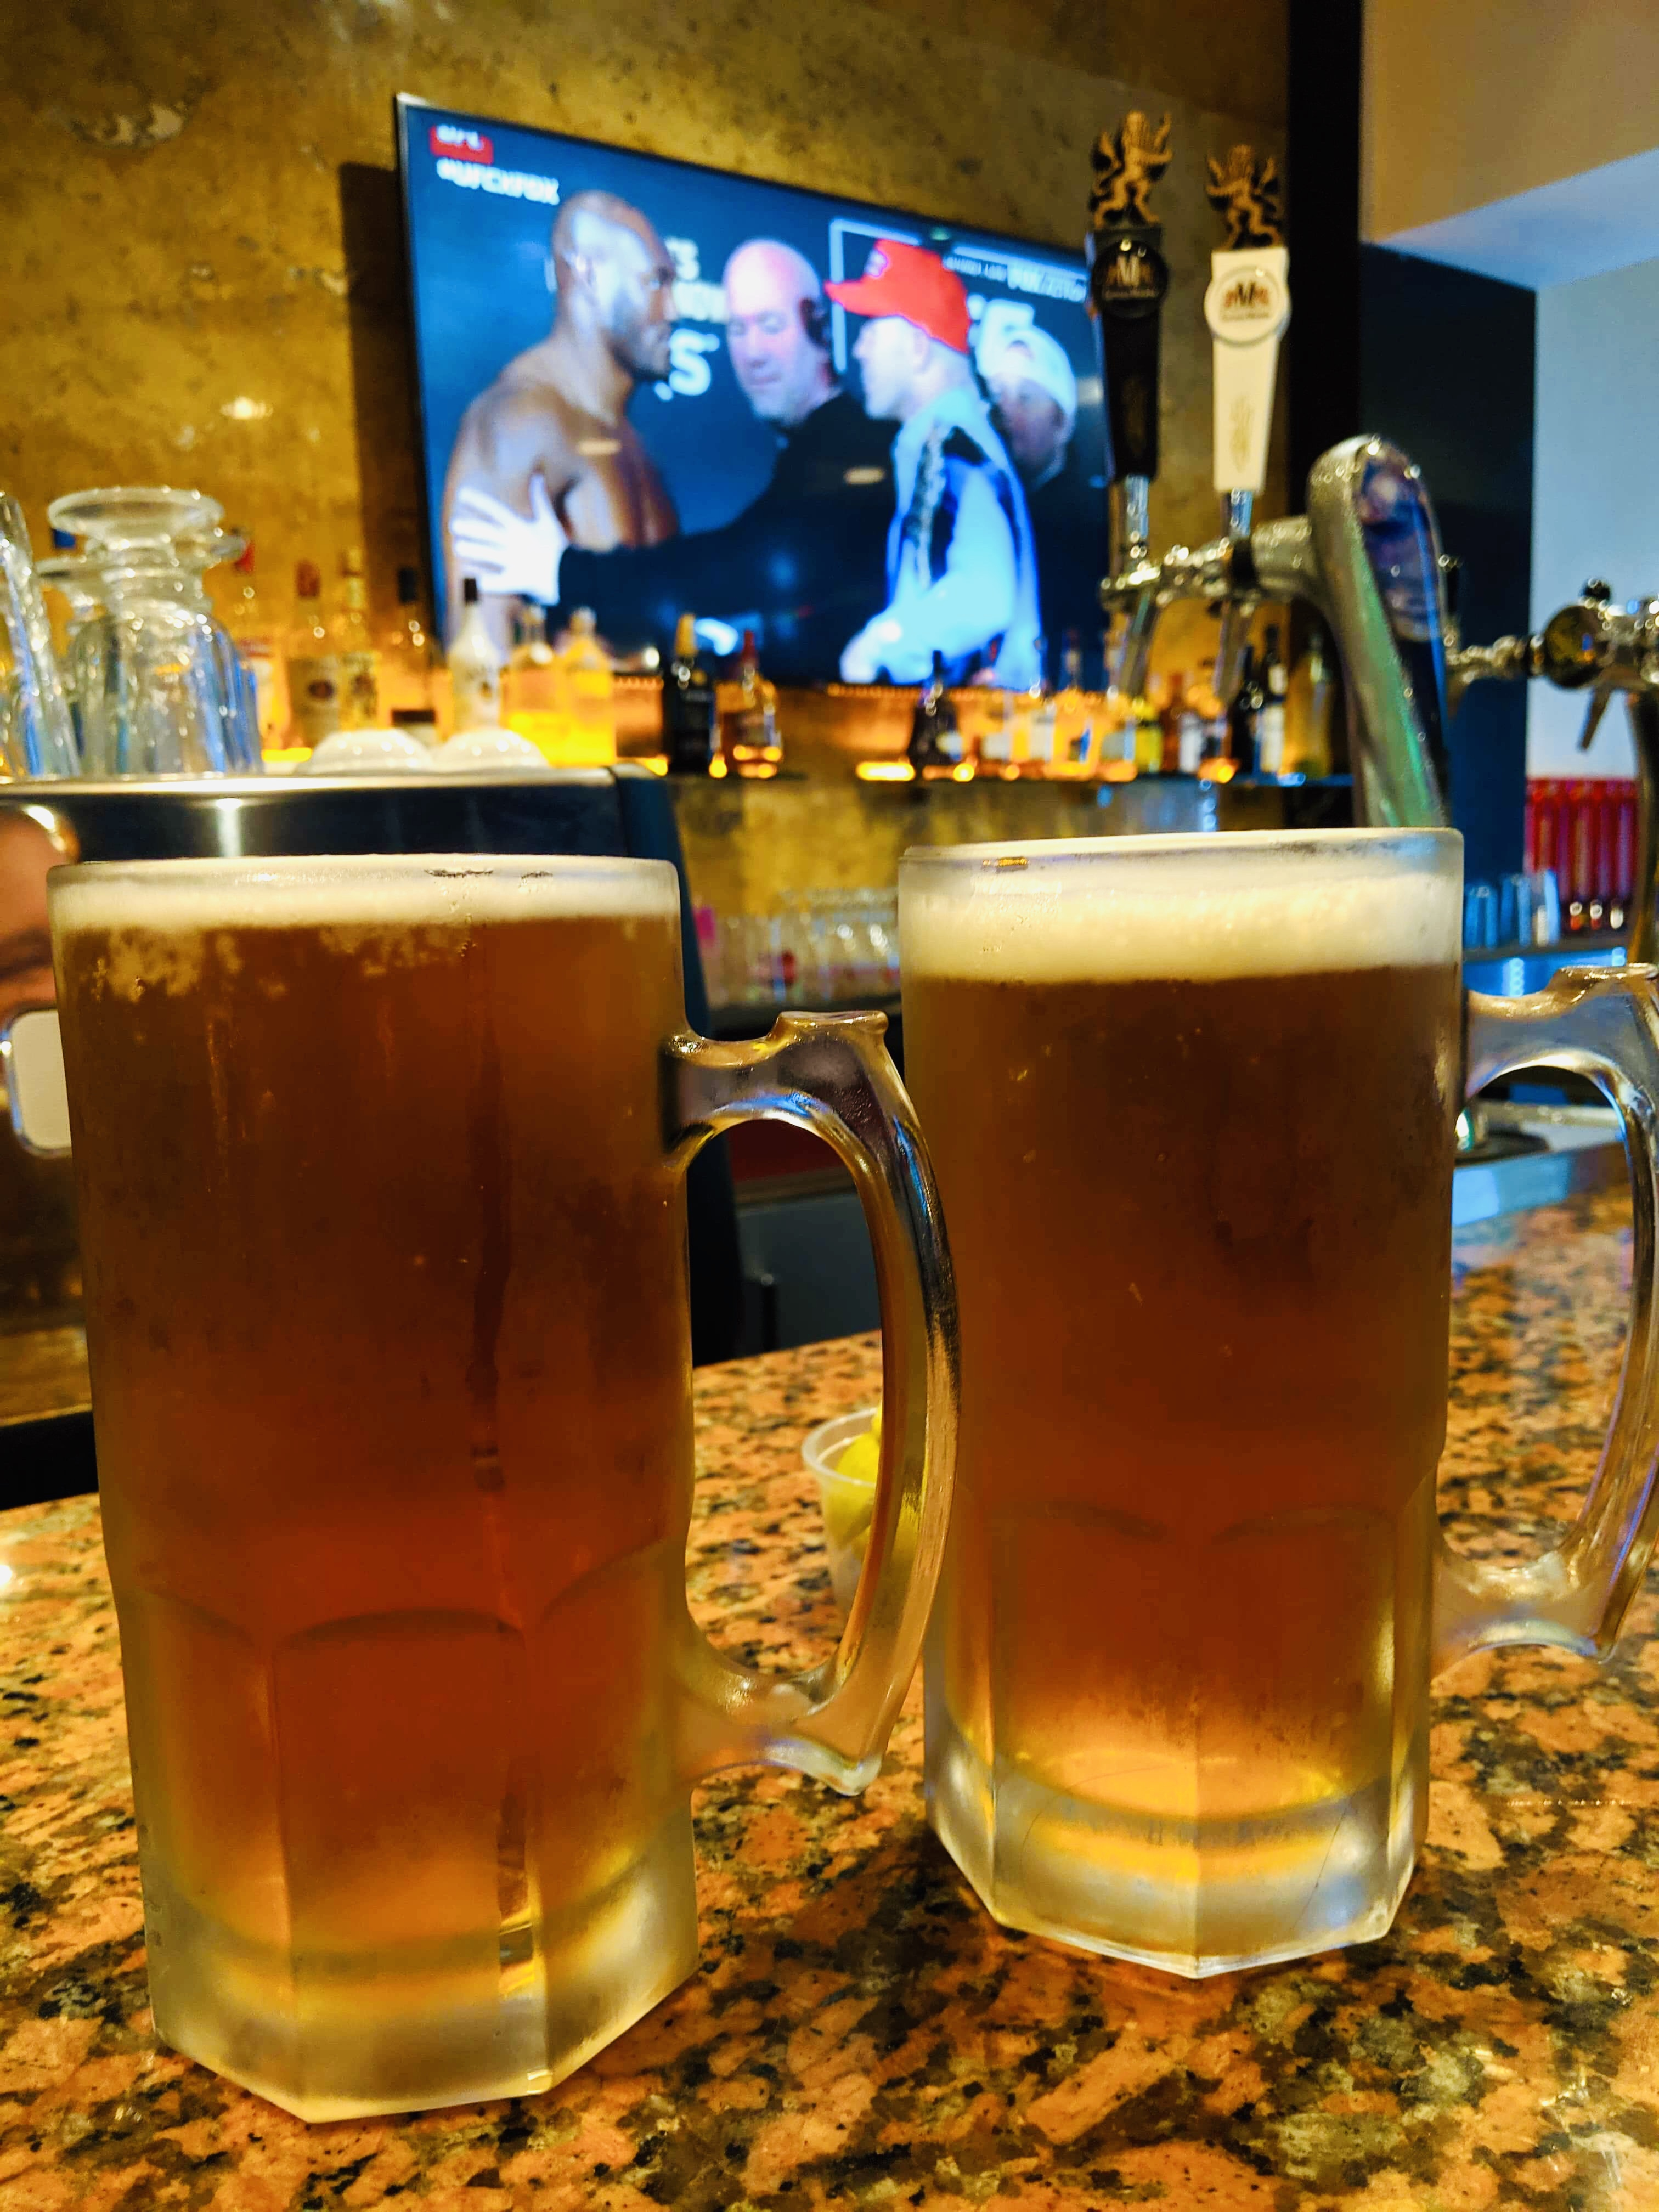 Two chilled pints of beer at the bar of Champions, with UFC playing on the screen in the background